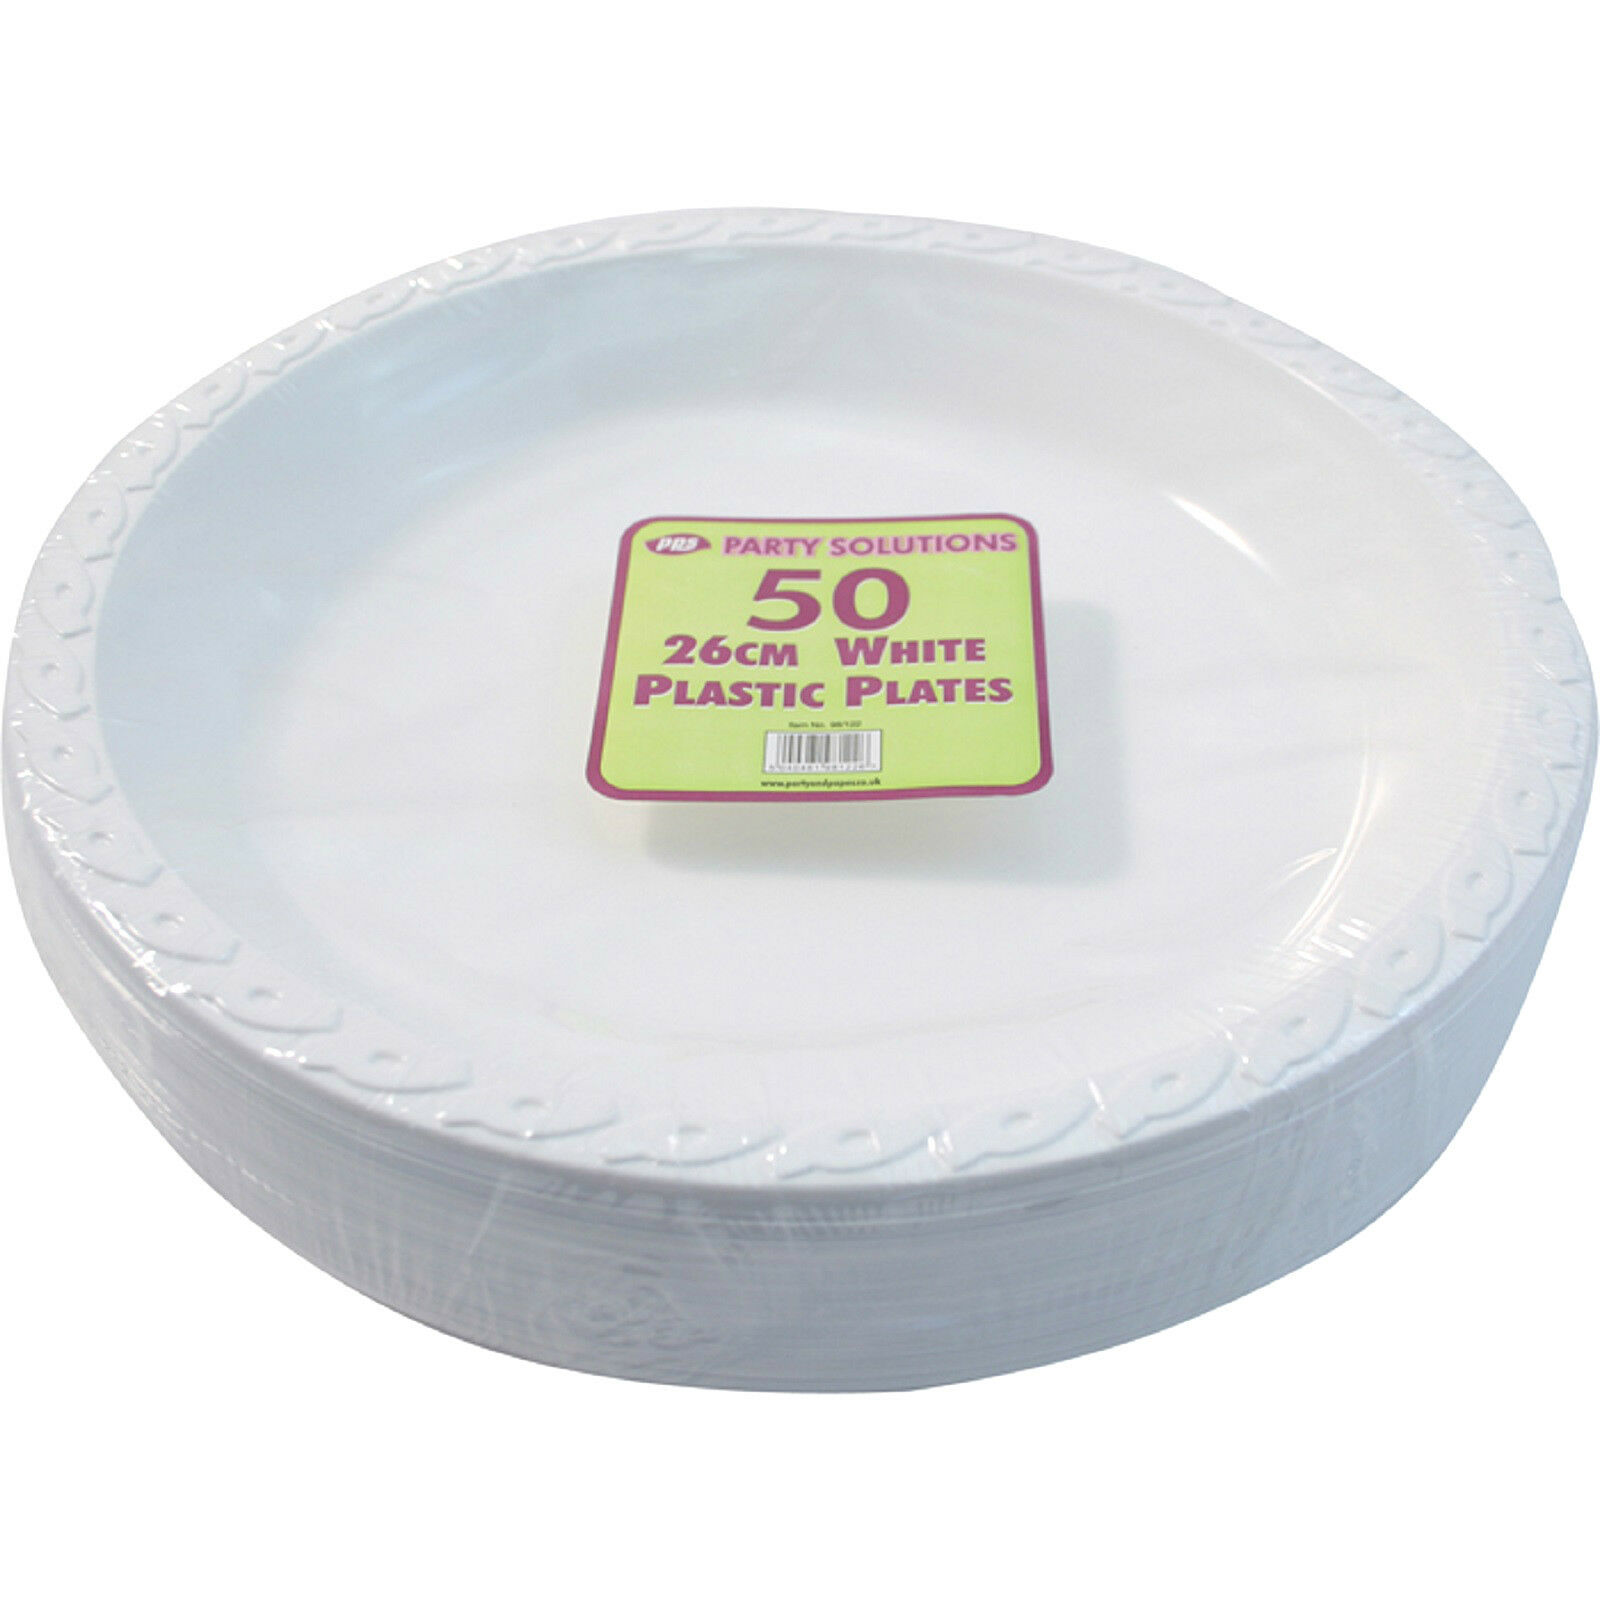 1000 x Weiß PLASTIC PLATES ROUND 26cm 10  TABLEWARE PARTY BIRTHDAY DISPOSABLE